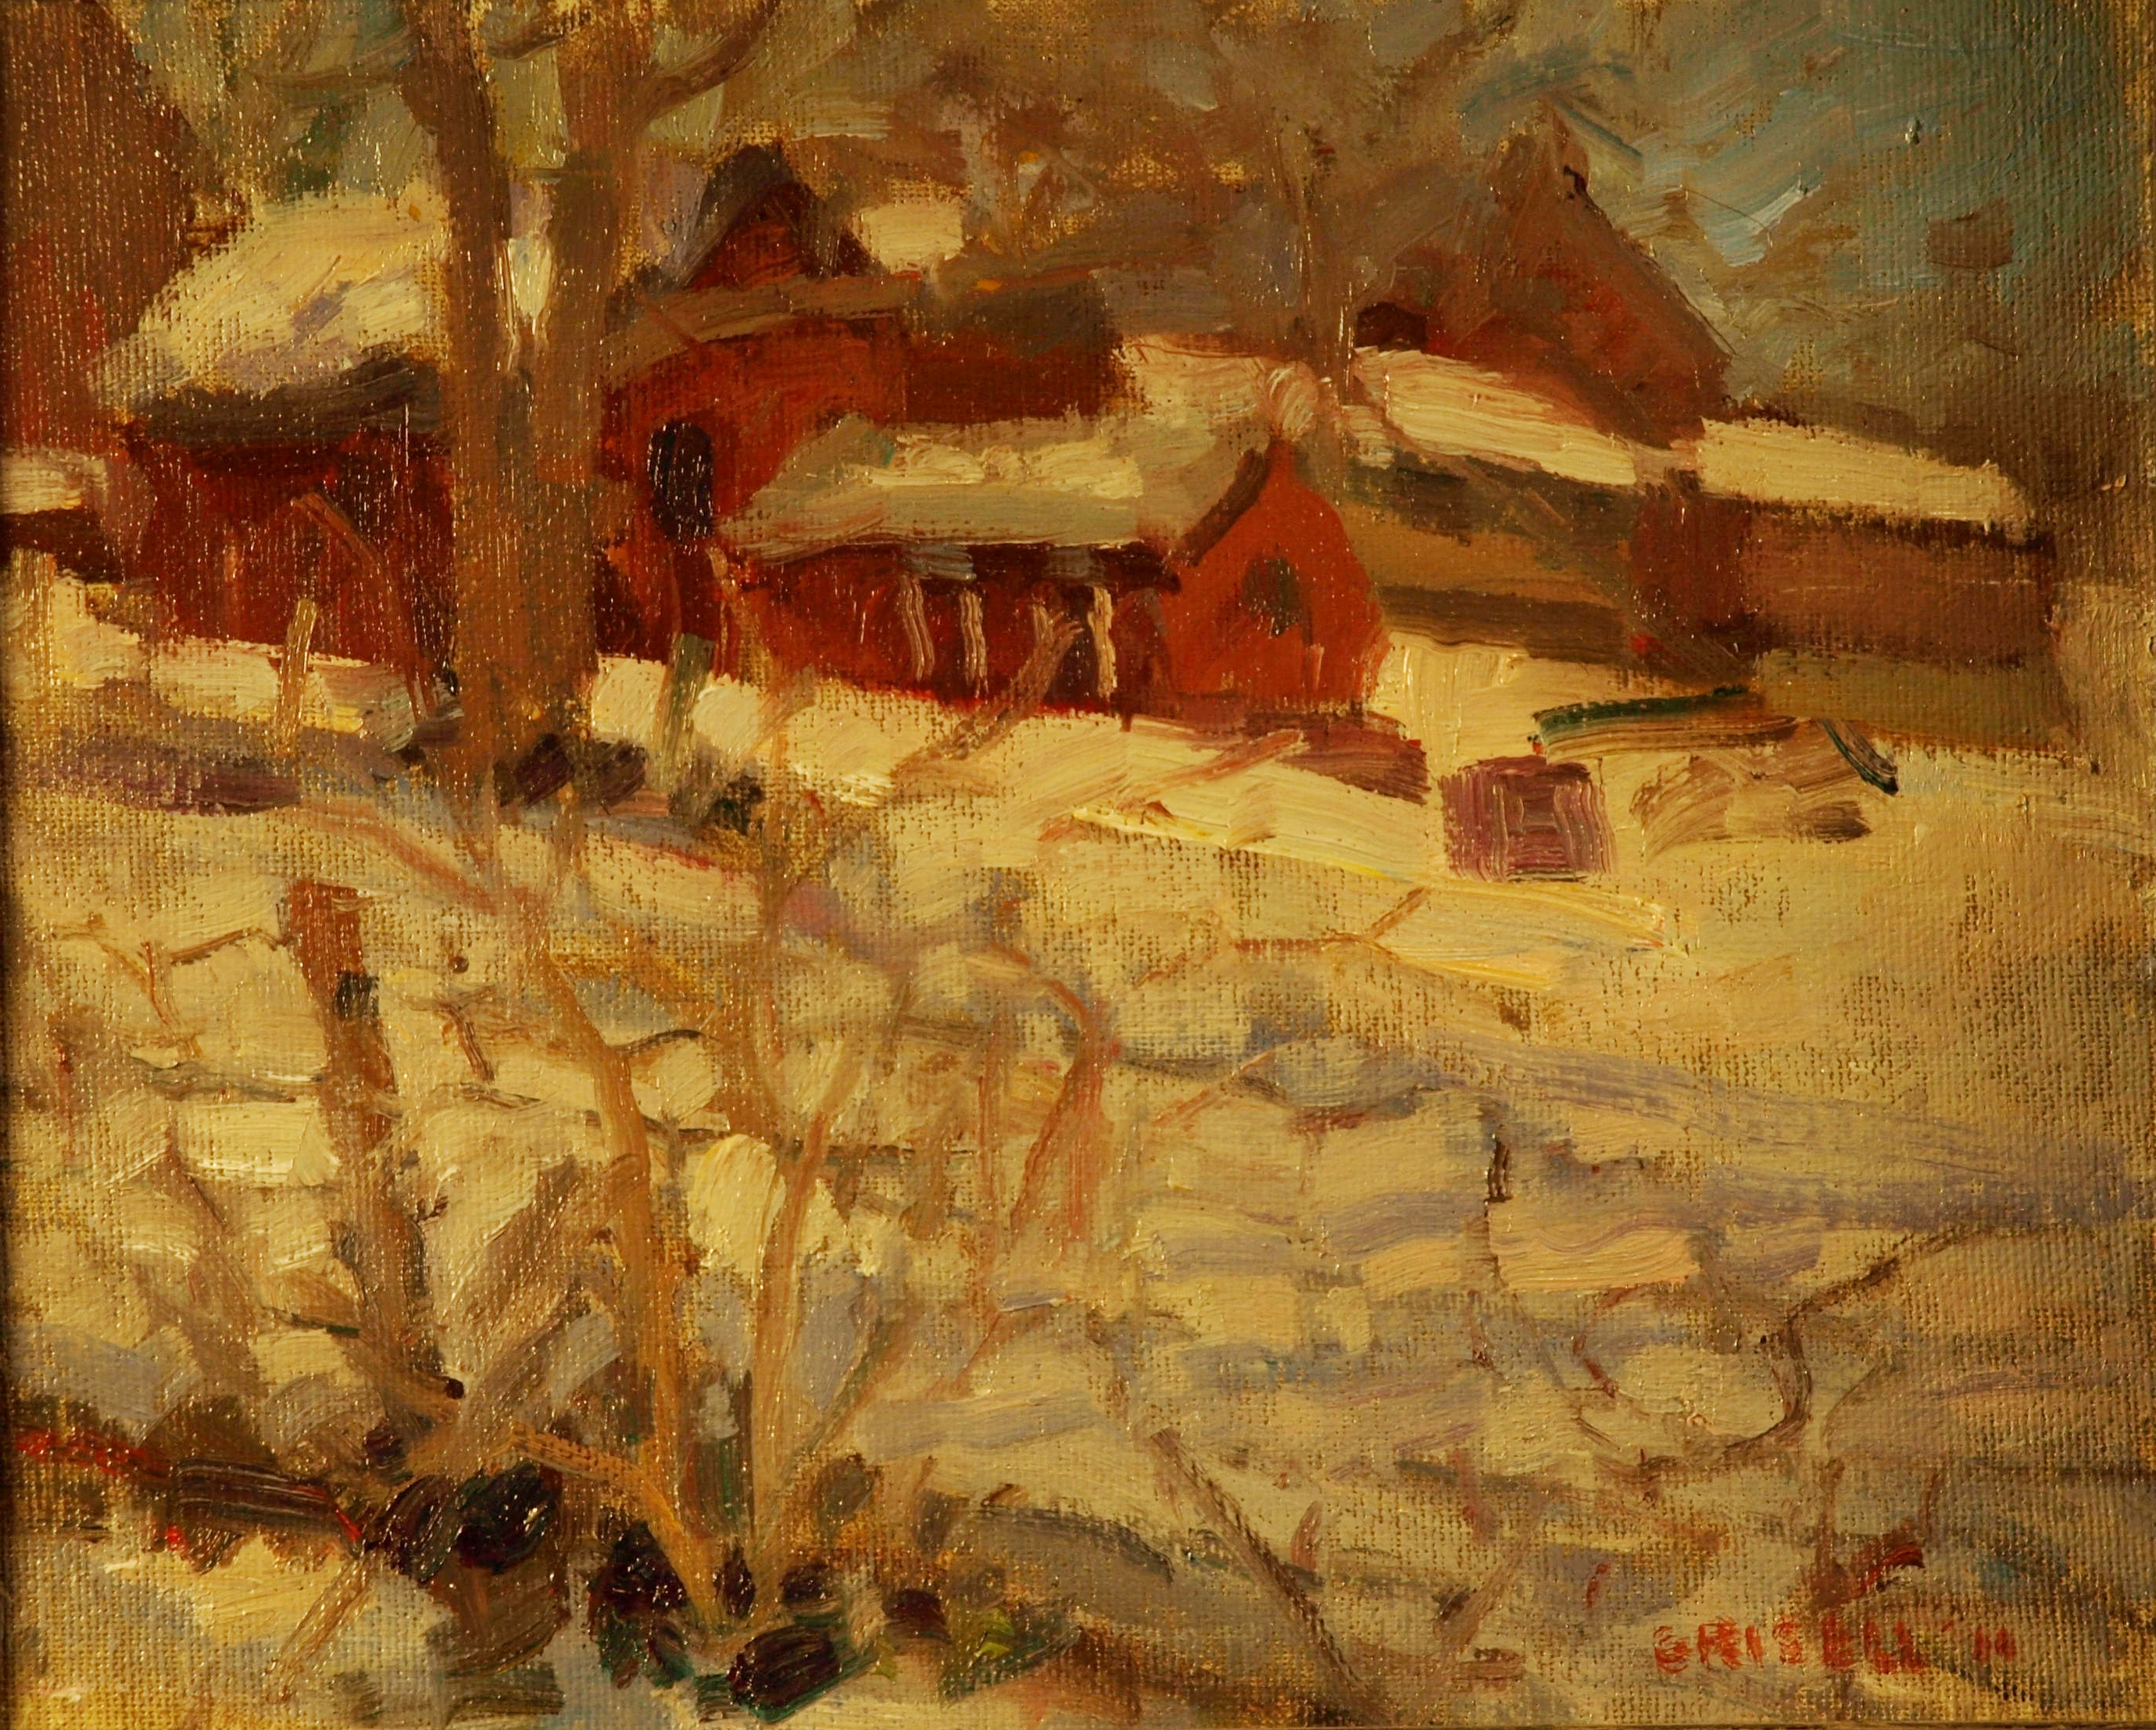 Yale Farm - March, Oil on Canvas on Panel, 8 x 10 Inches, by Susan Grisell, $150